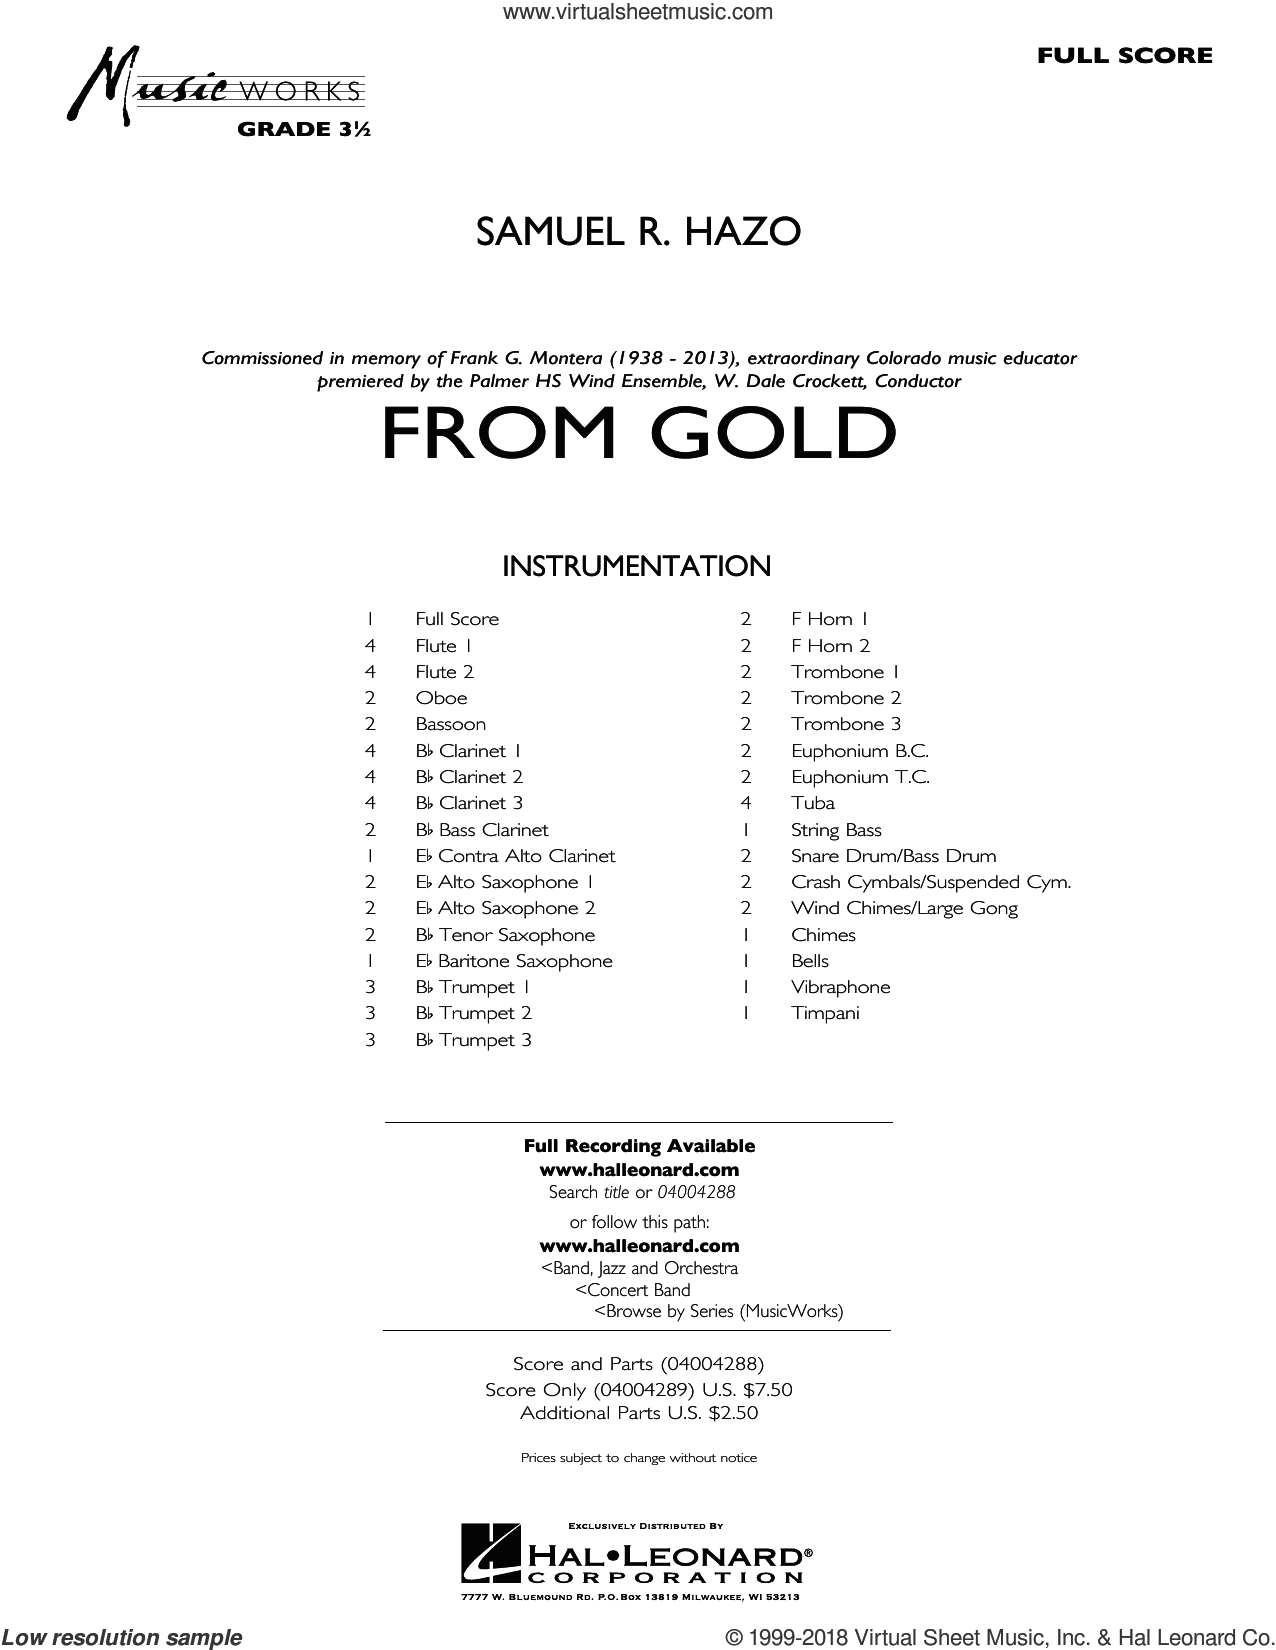 From Gold (COMPLETE) sheet music for concert band by Samuel R. Hazo, intermediate skill level